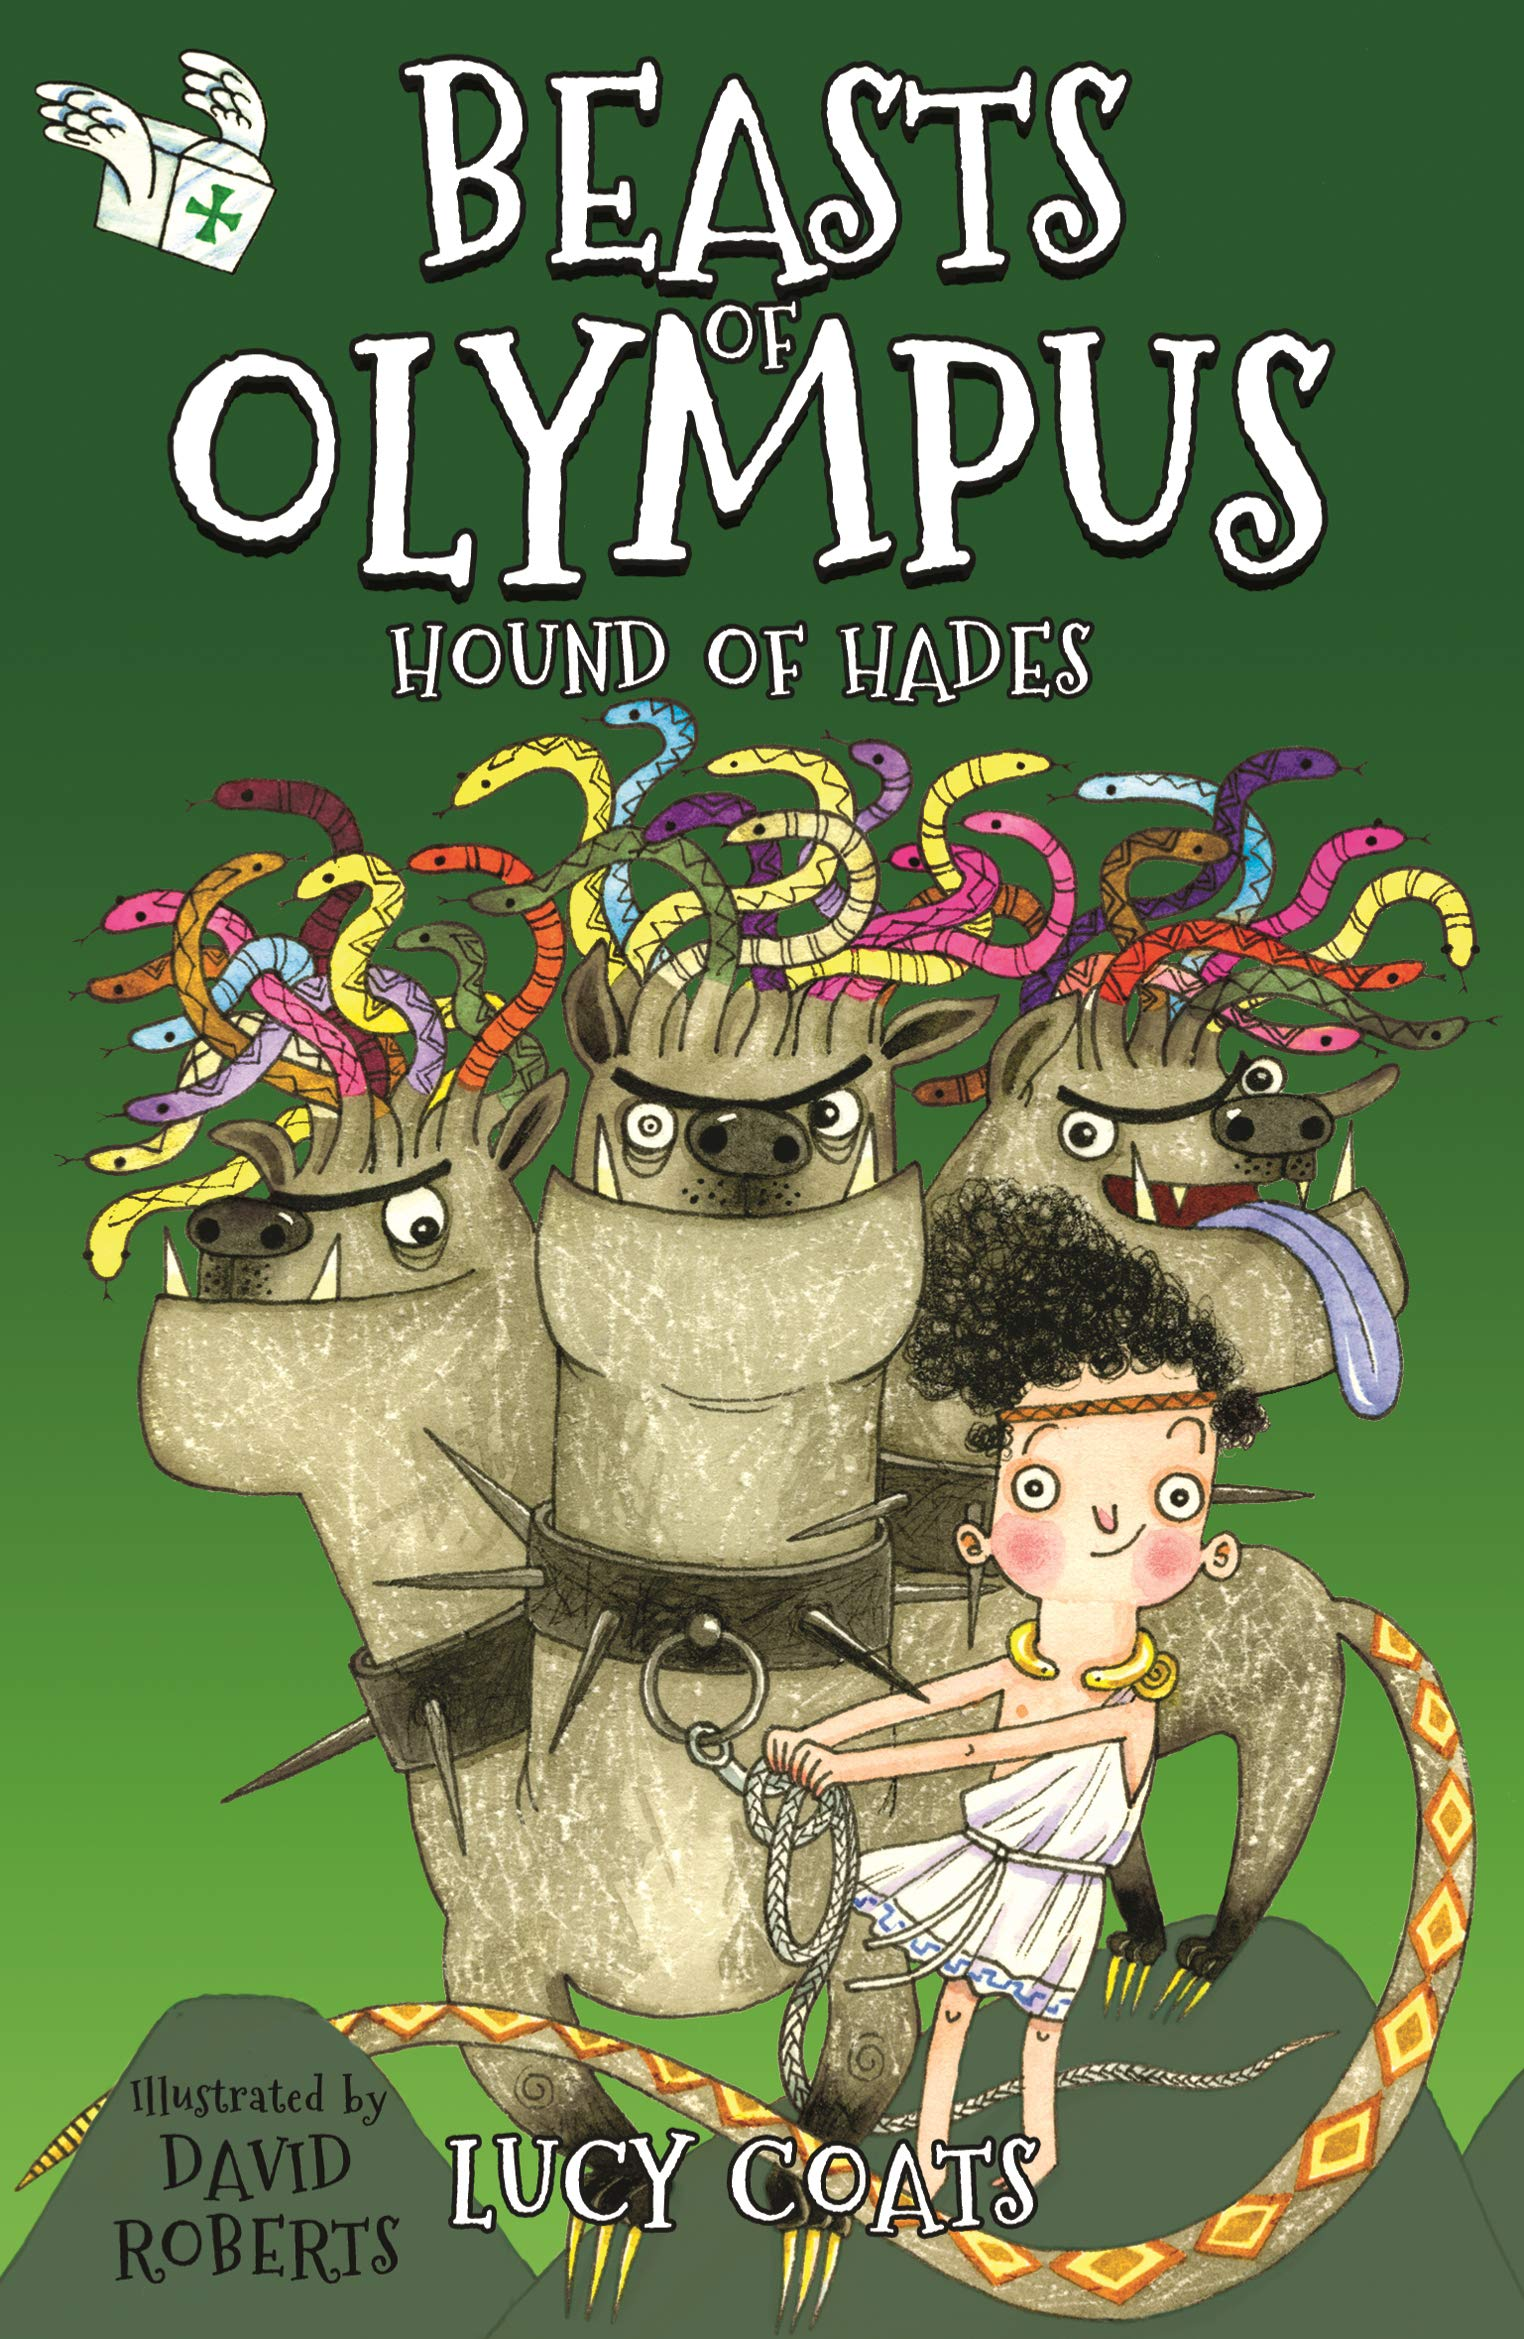 Beasts of Olympus 2: Hound of Hades: Amazon.co.uk: Coats, Lucy:  9781848124400: Books